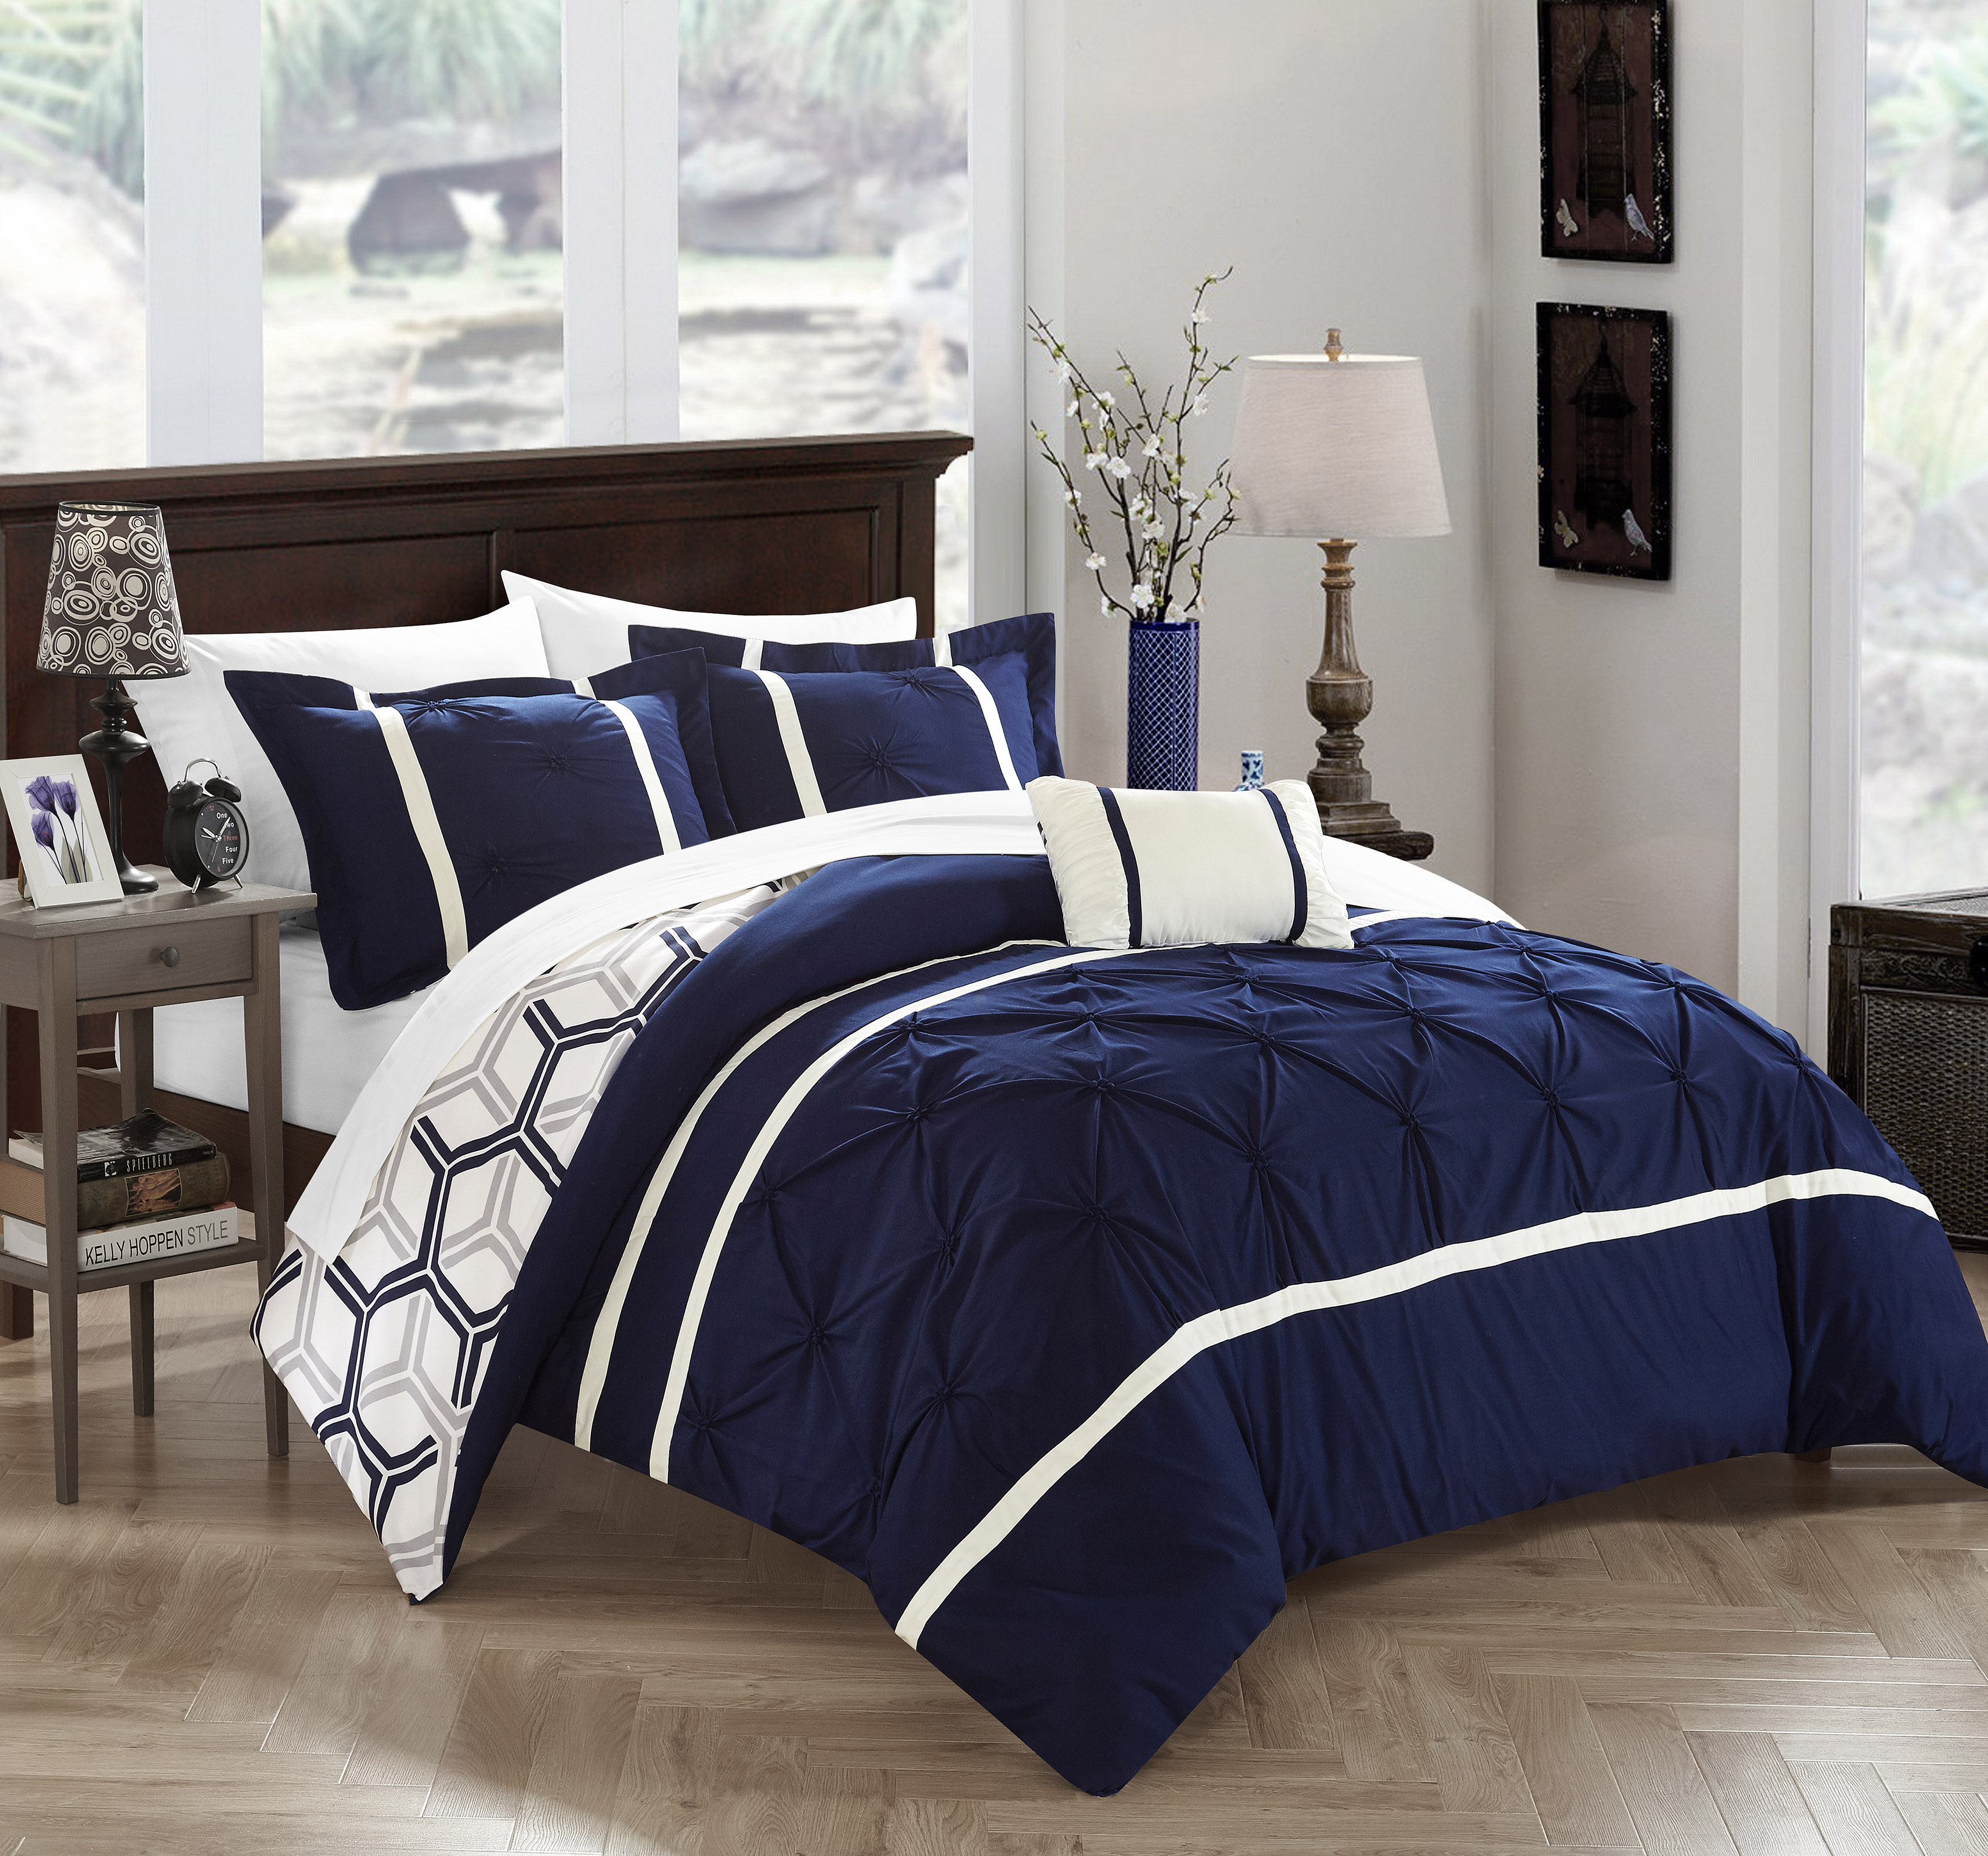 Chic Home 3-Piece Avee Pinch Pleated Ruffled and Reversible Geometric Design Printed Twin Comforter Set Navy